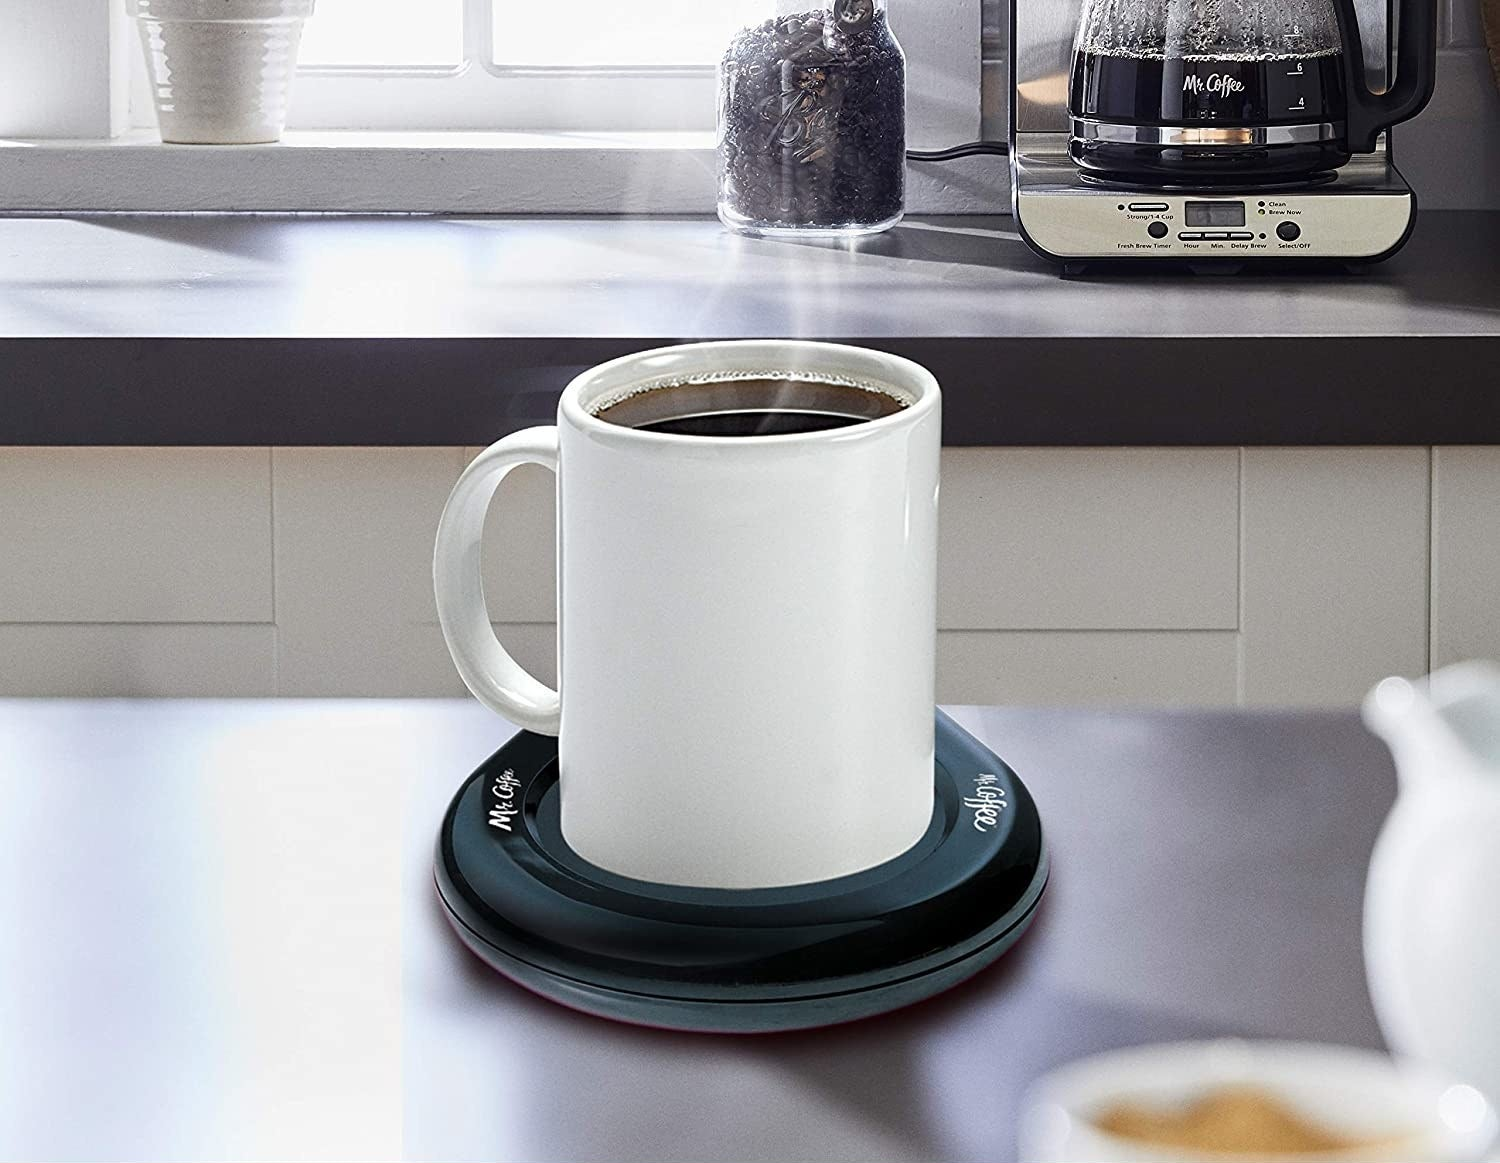 A mug on a black round mug warming surface on a table